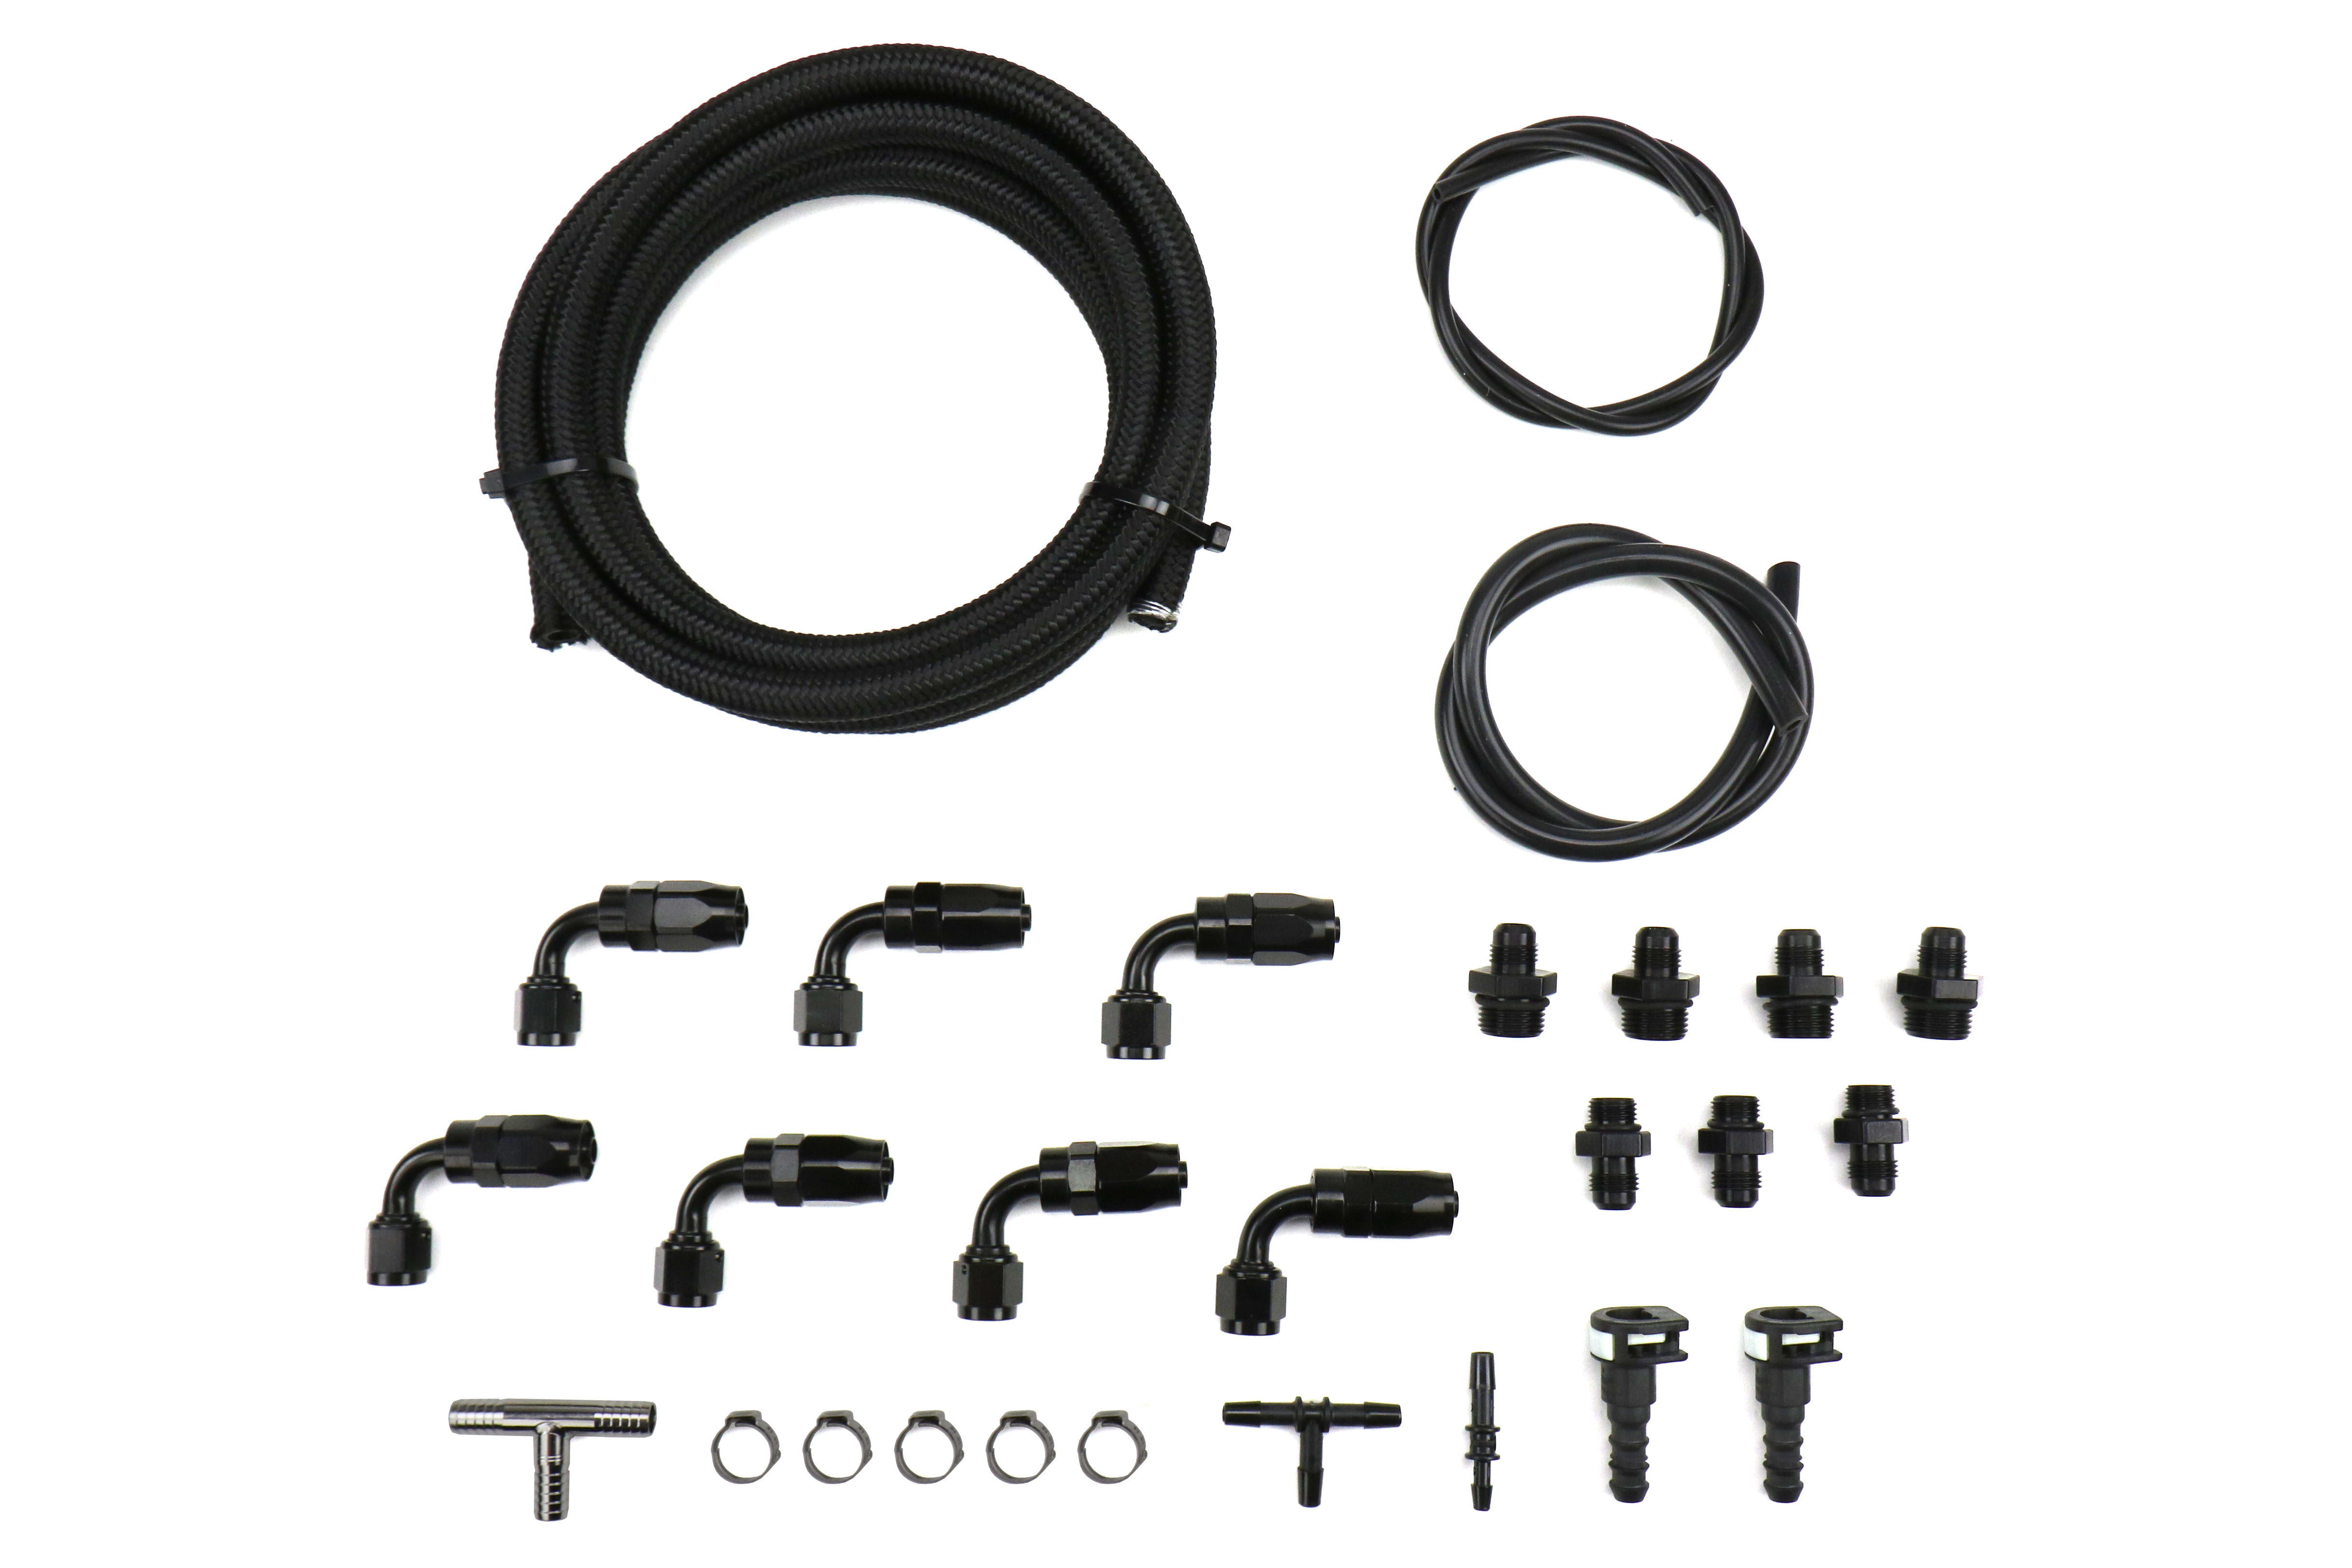 IAG Braided Fuel Line and Fitting Kit For IAG Top Feed Fuel Rails and -6 Aeromotive FPR